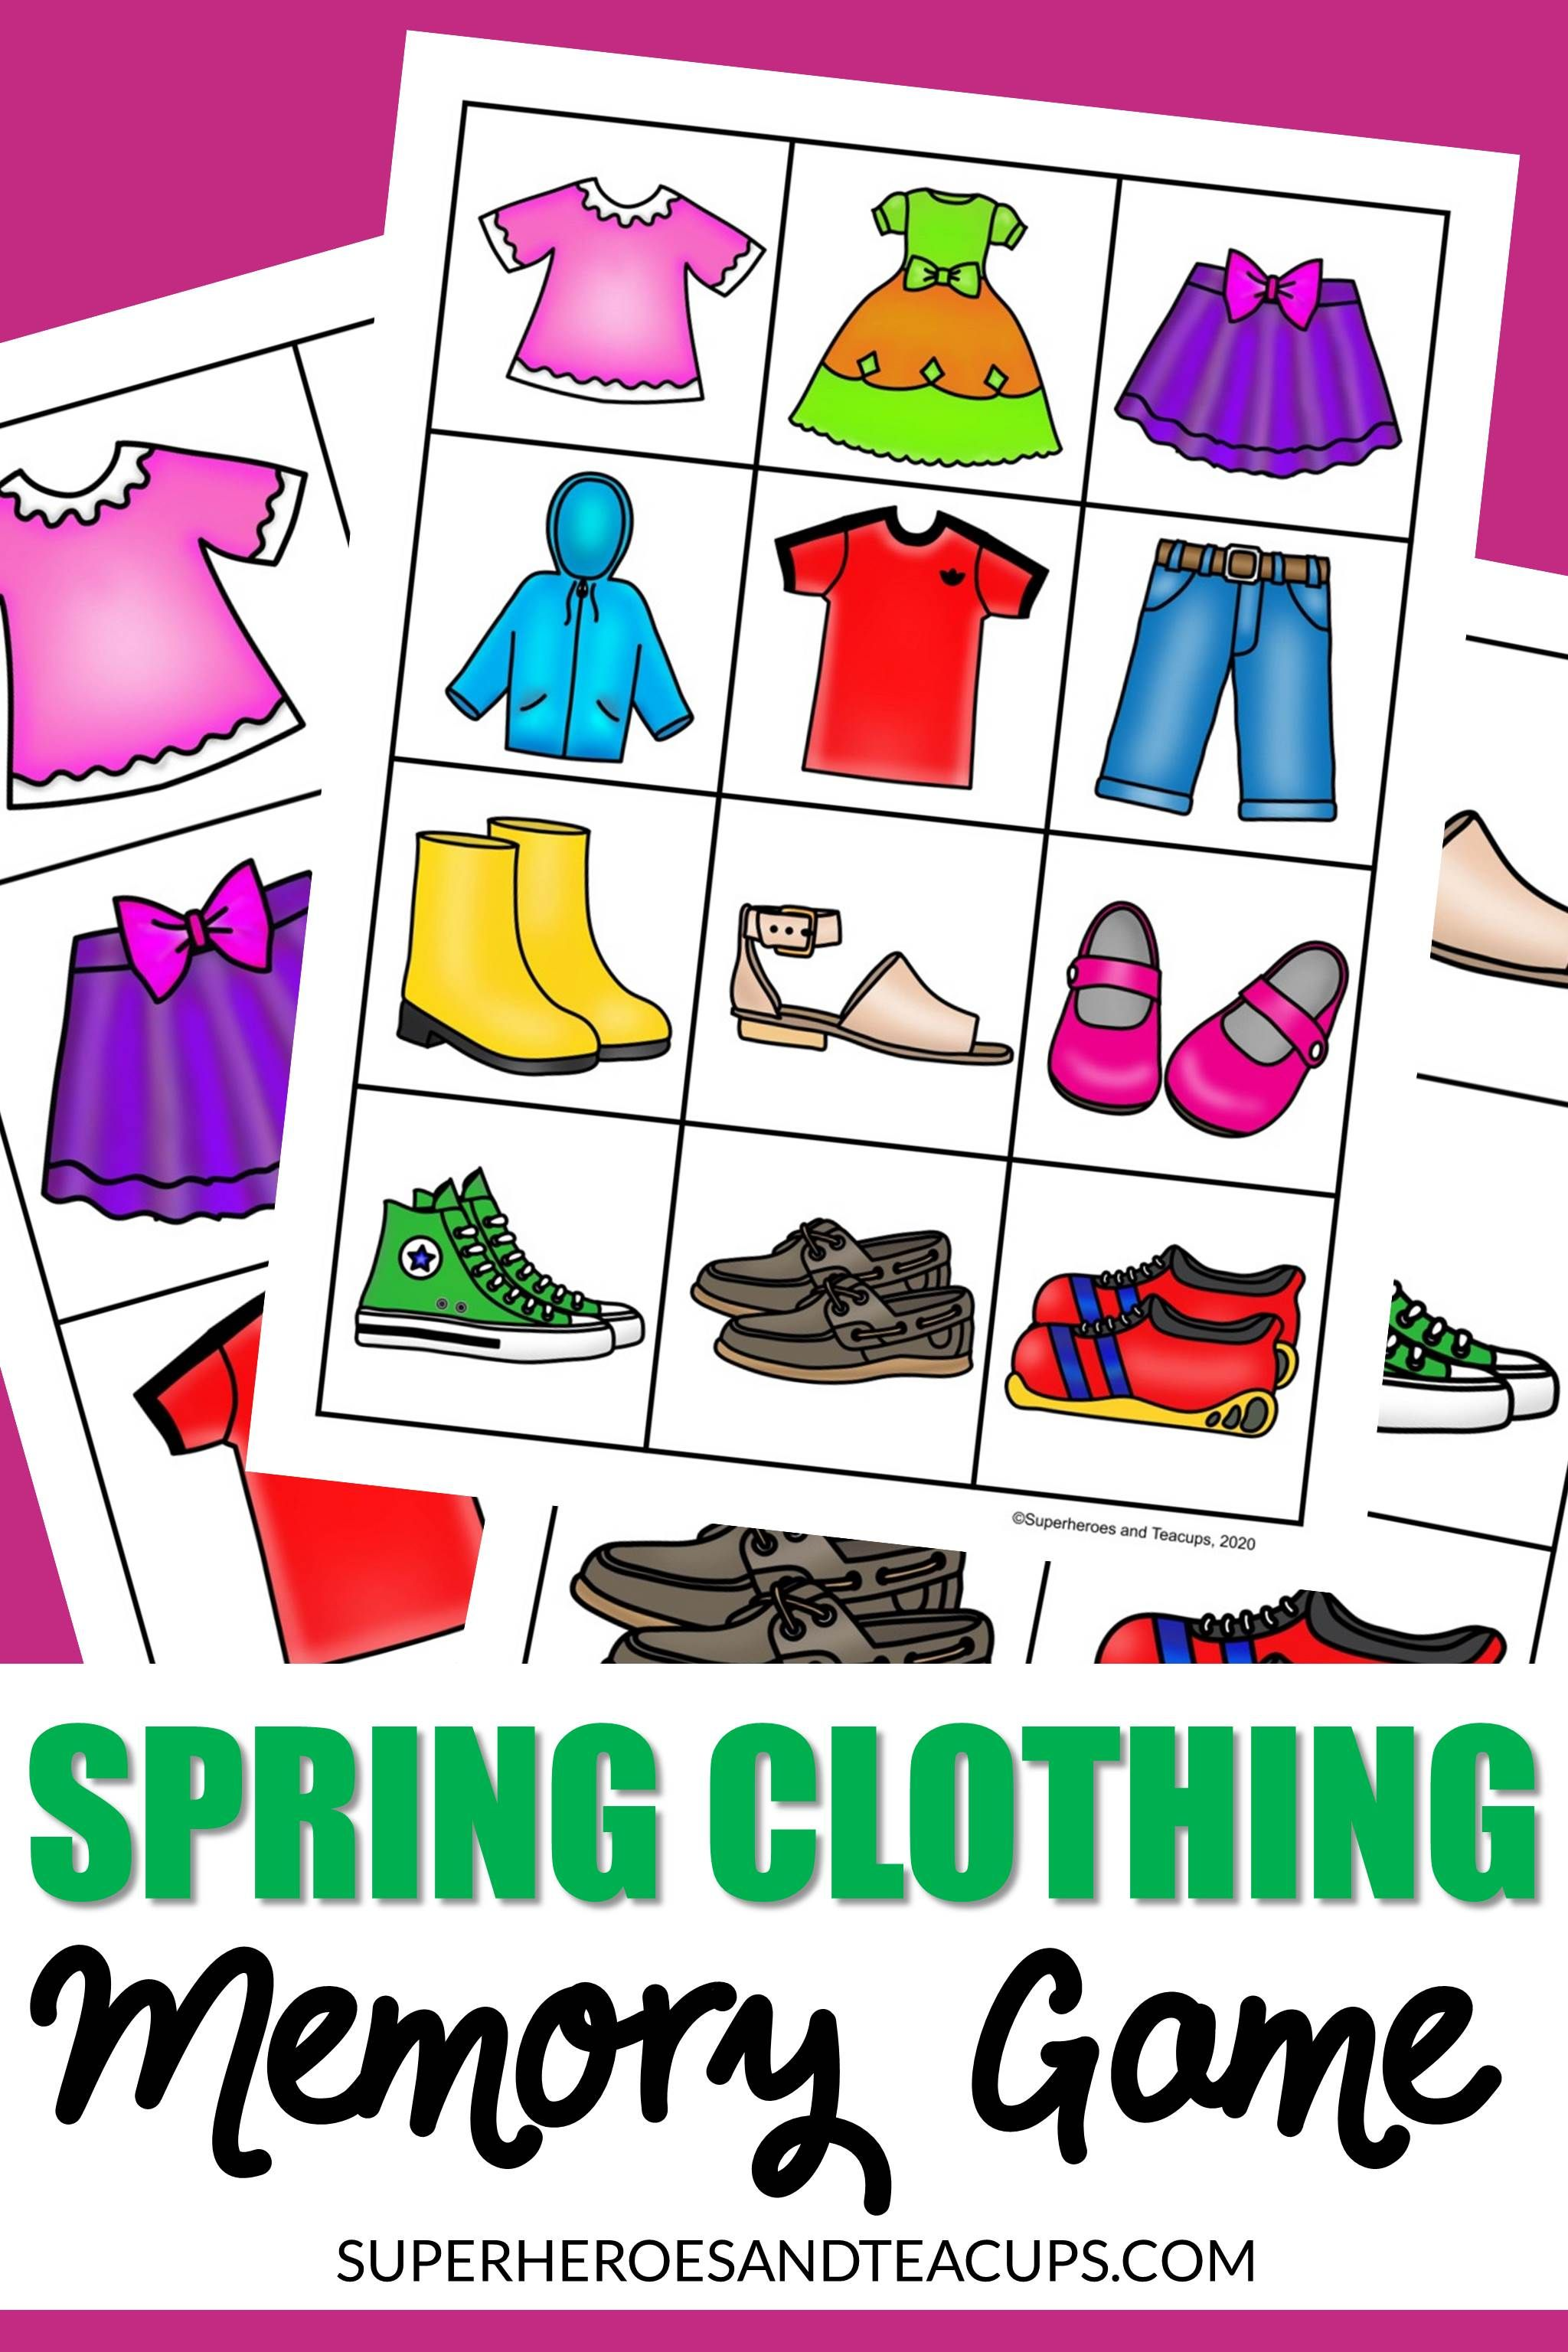 Free Clipart For Teachers Clothing Clothes Illustration Clip Art Clothes Illustration Flashcards [ 1200 x 1200 Pixel ]